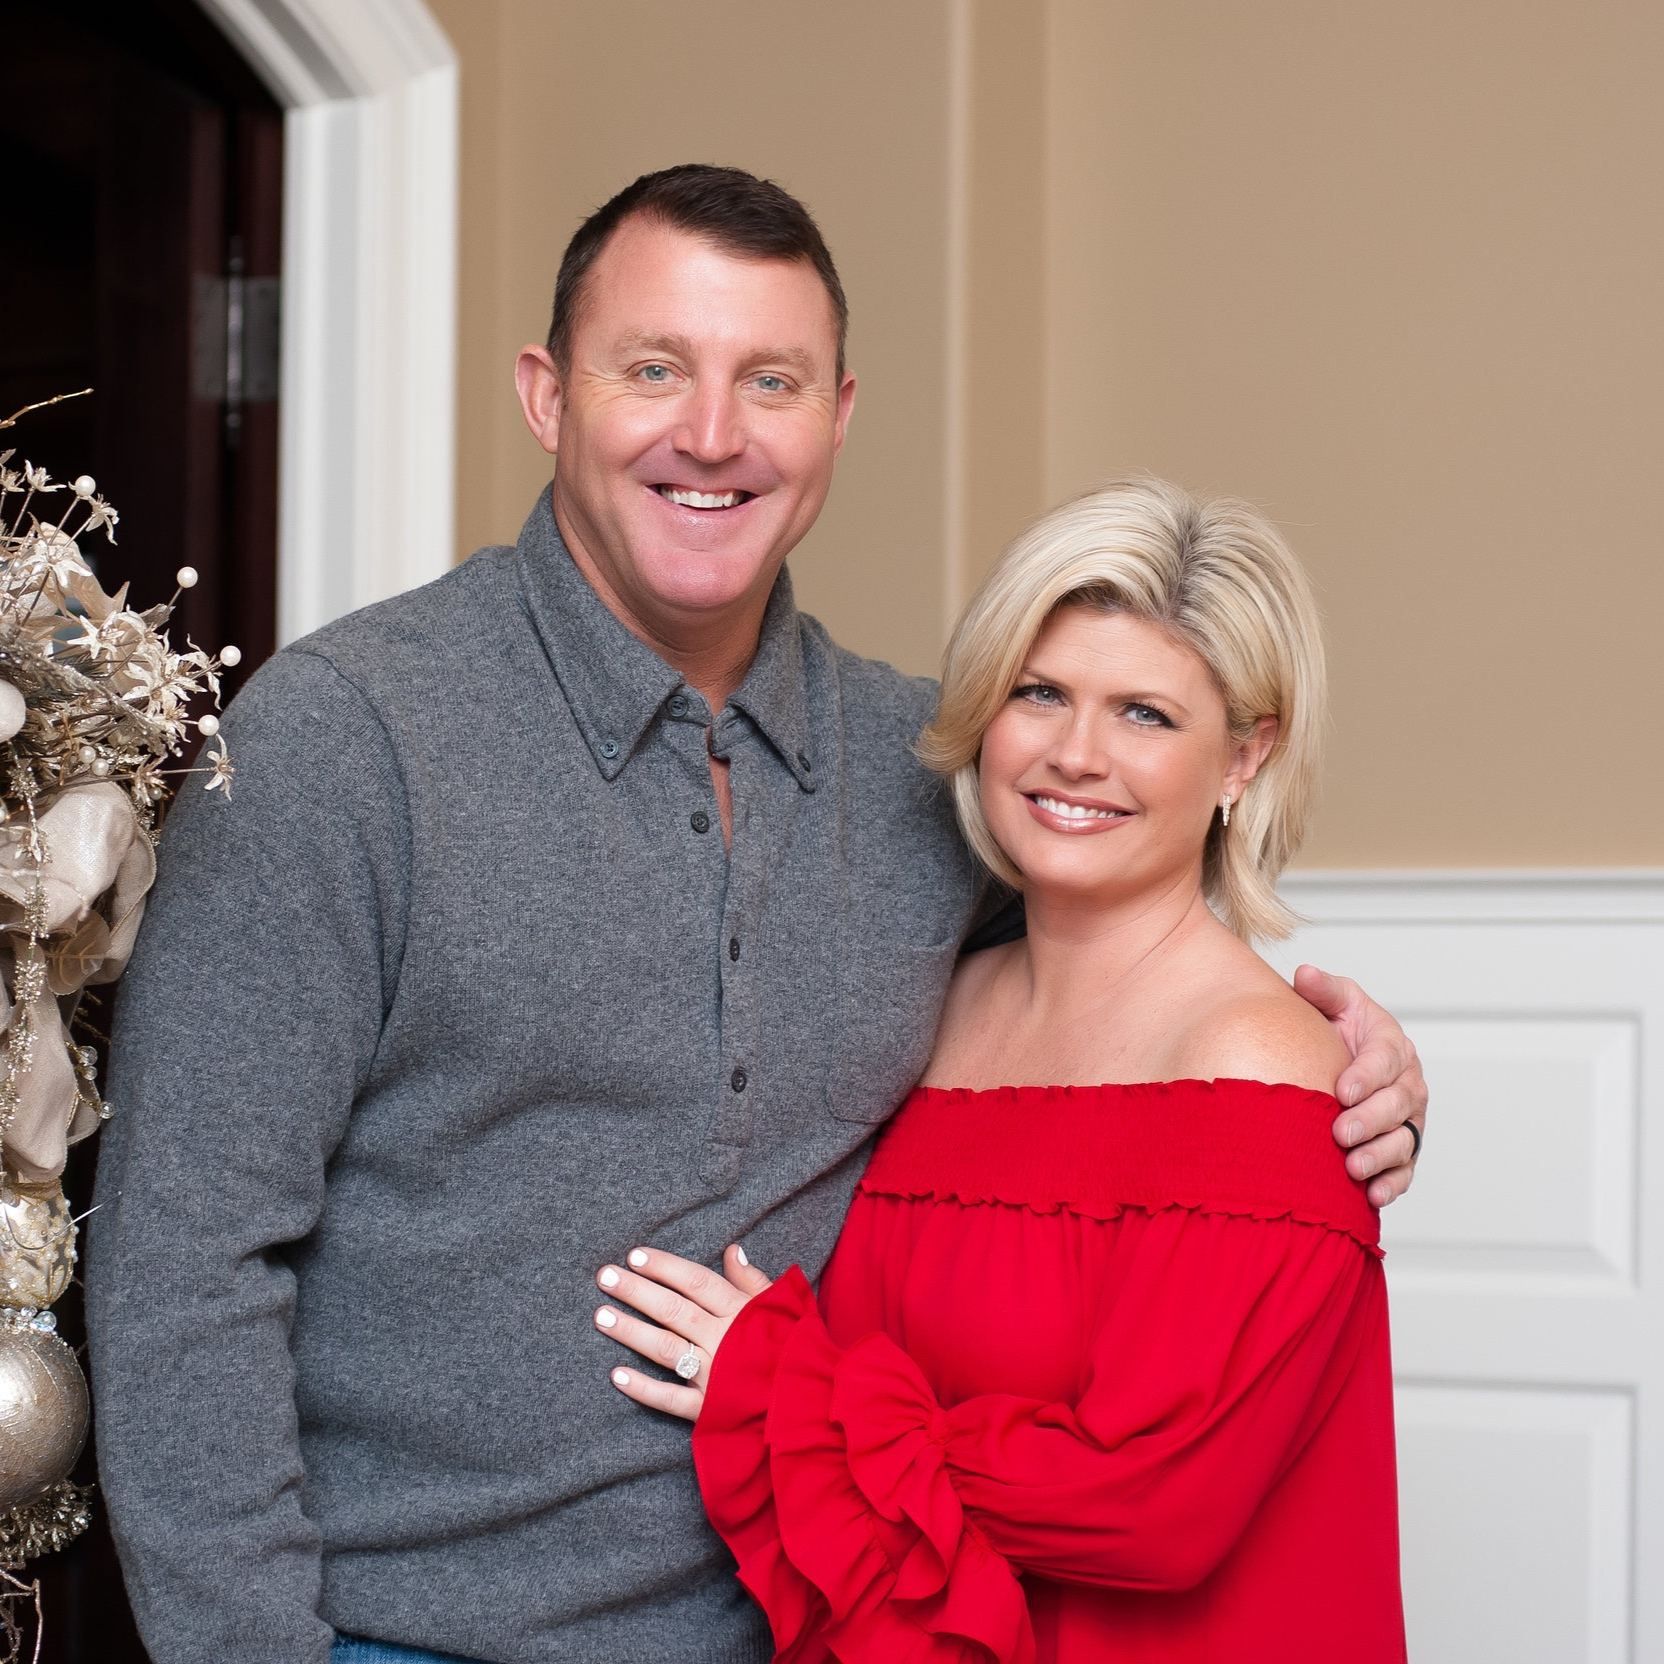 MLB Hall of Famer, Jim Thome and wife Andrea Thome.